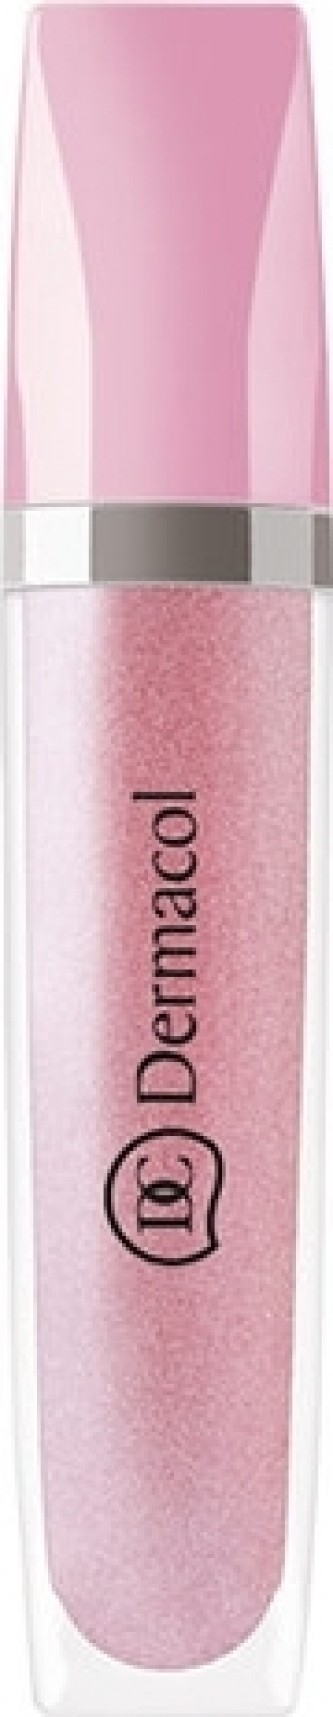 Dermacol Shimmering Lip Gloss 8 ml 6